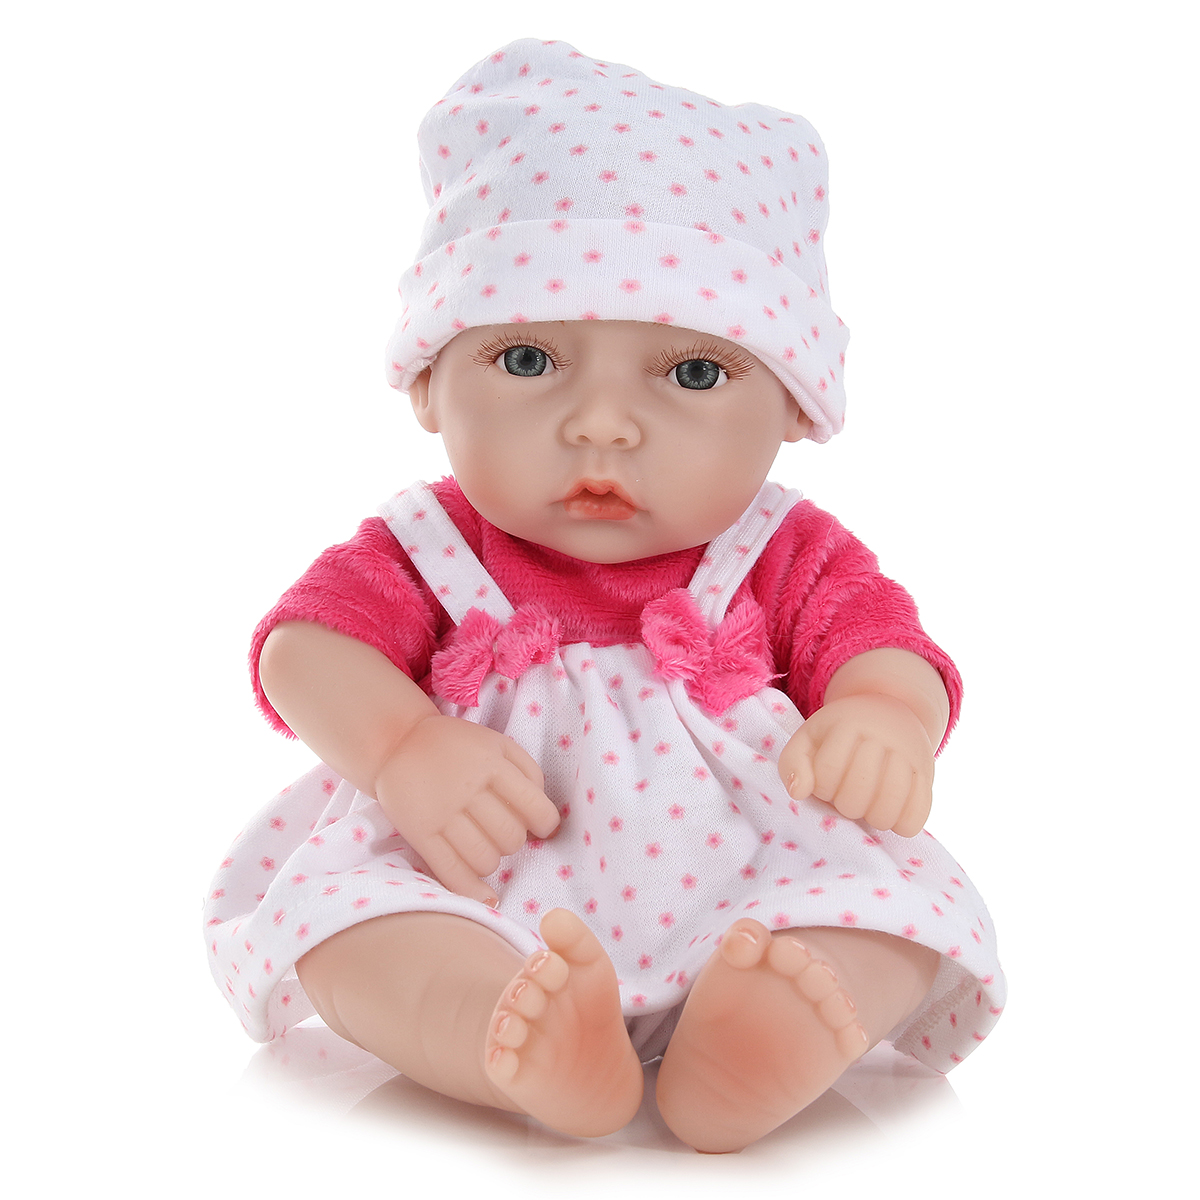 11inch Handmade Reborn Baby Doll Lifelike Realistic Newborn Girl Toy Play House Toys